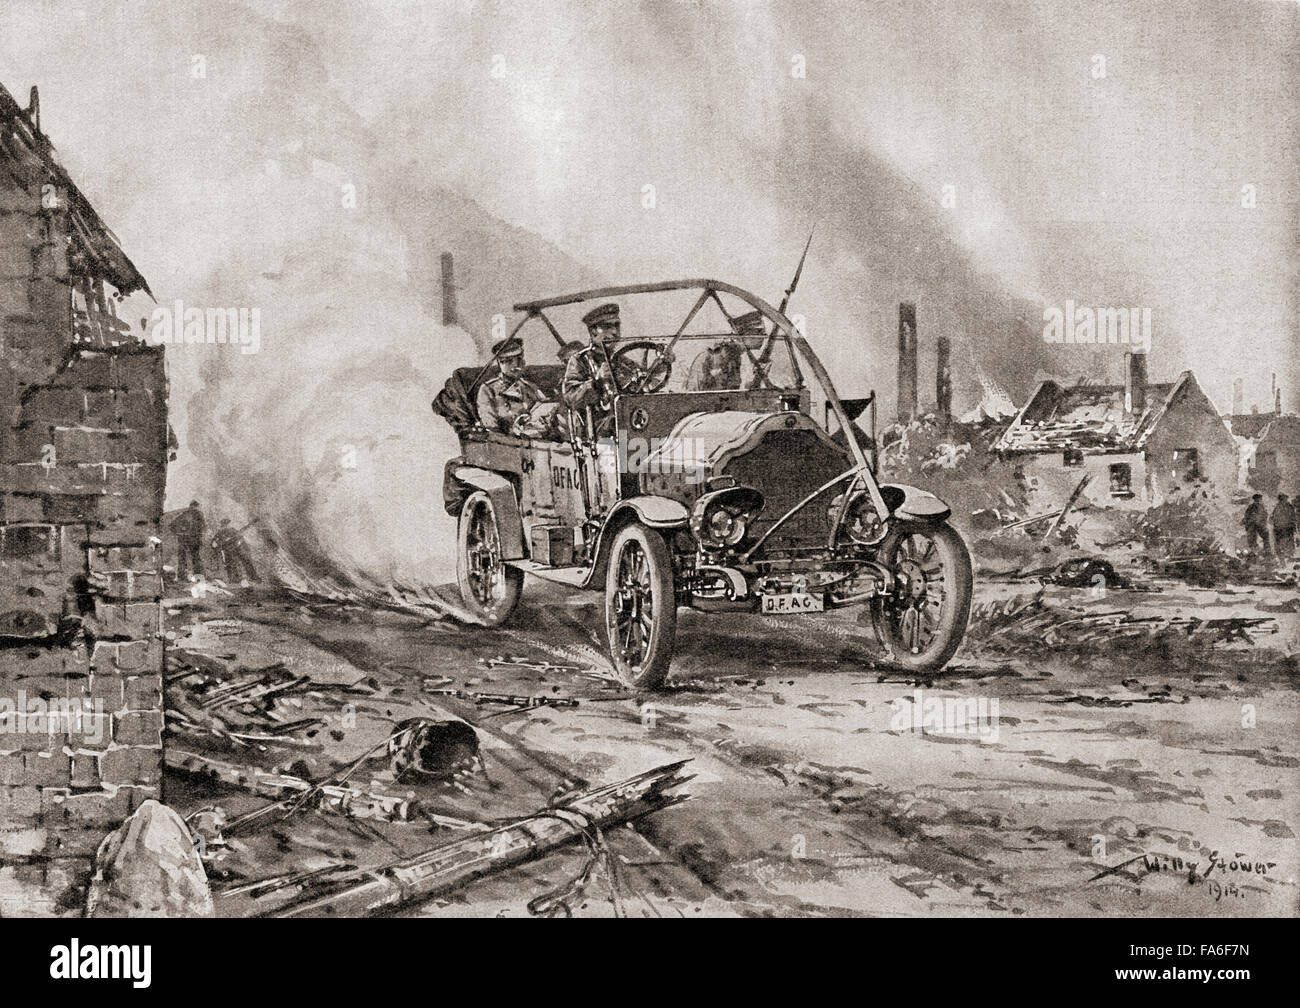 A vehicle from the Austro-Hungarian voluntary automobile corps on reconnaissance in enemy territory during WWI. - Stock Image